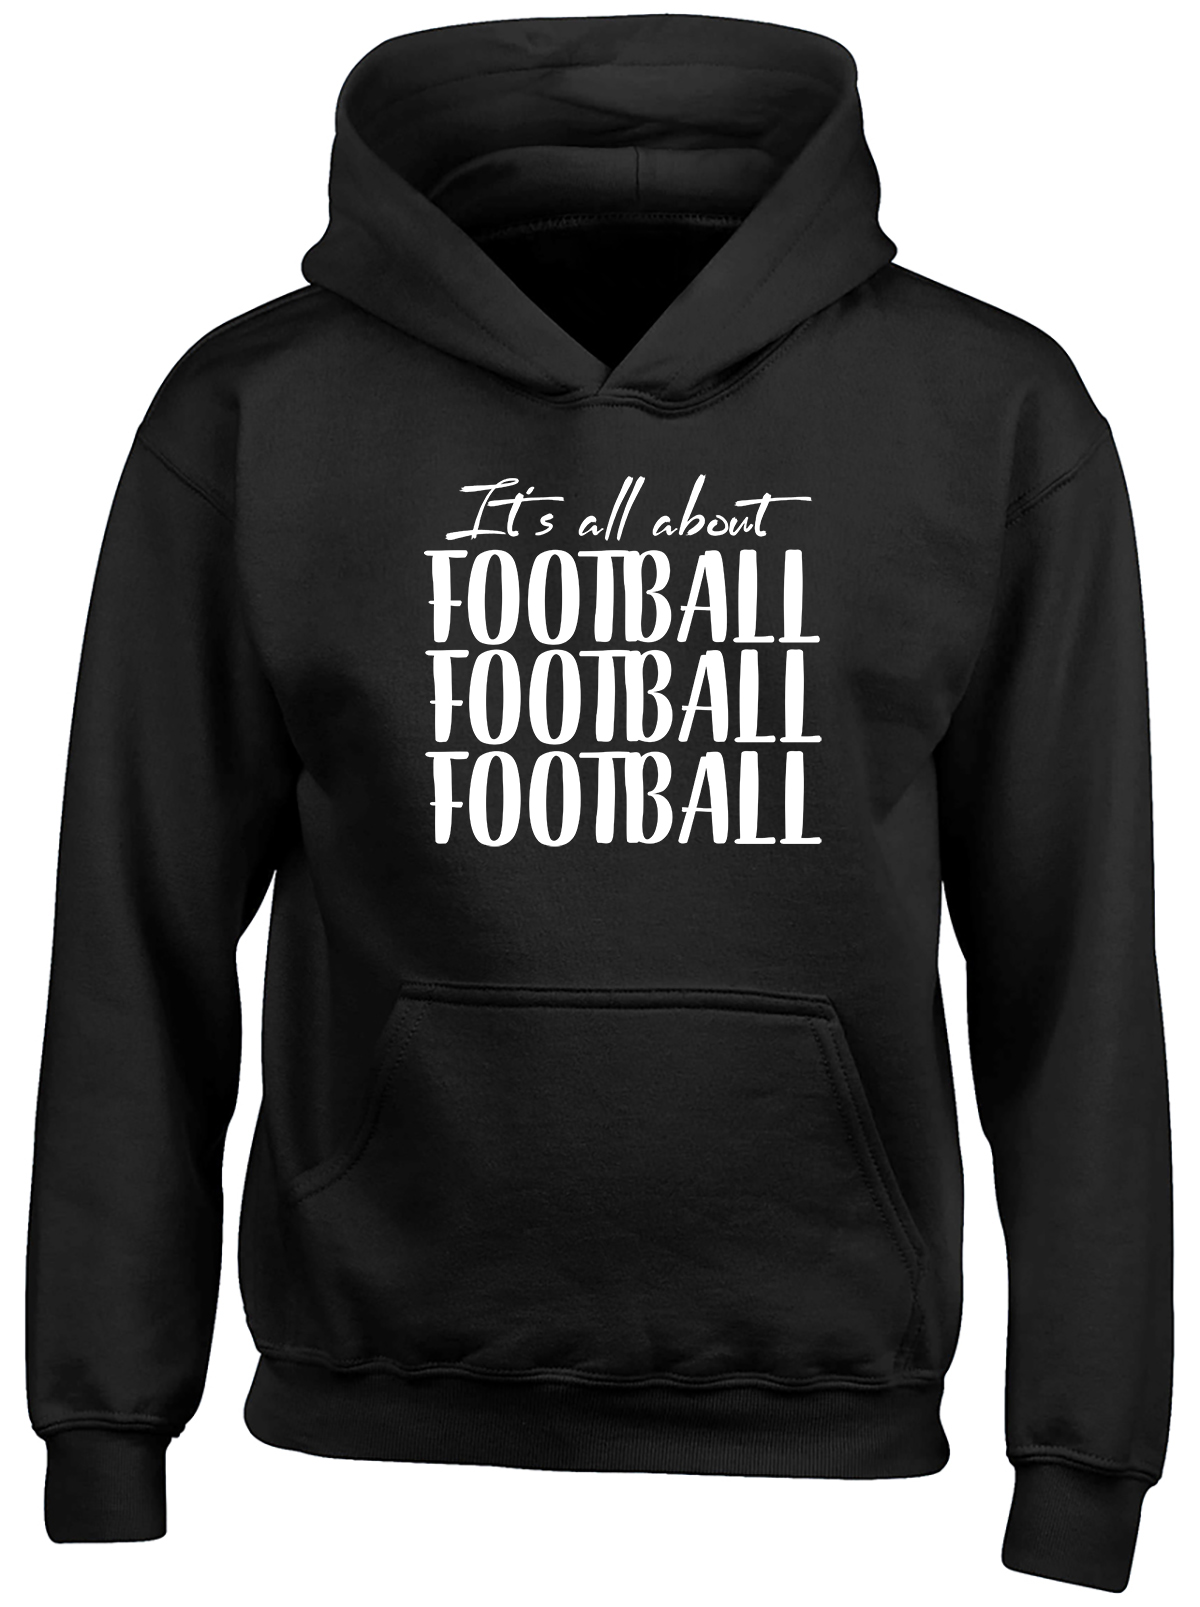 It's all about Football Childrens Kids Hooded Top Hoodie Boys Girls